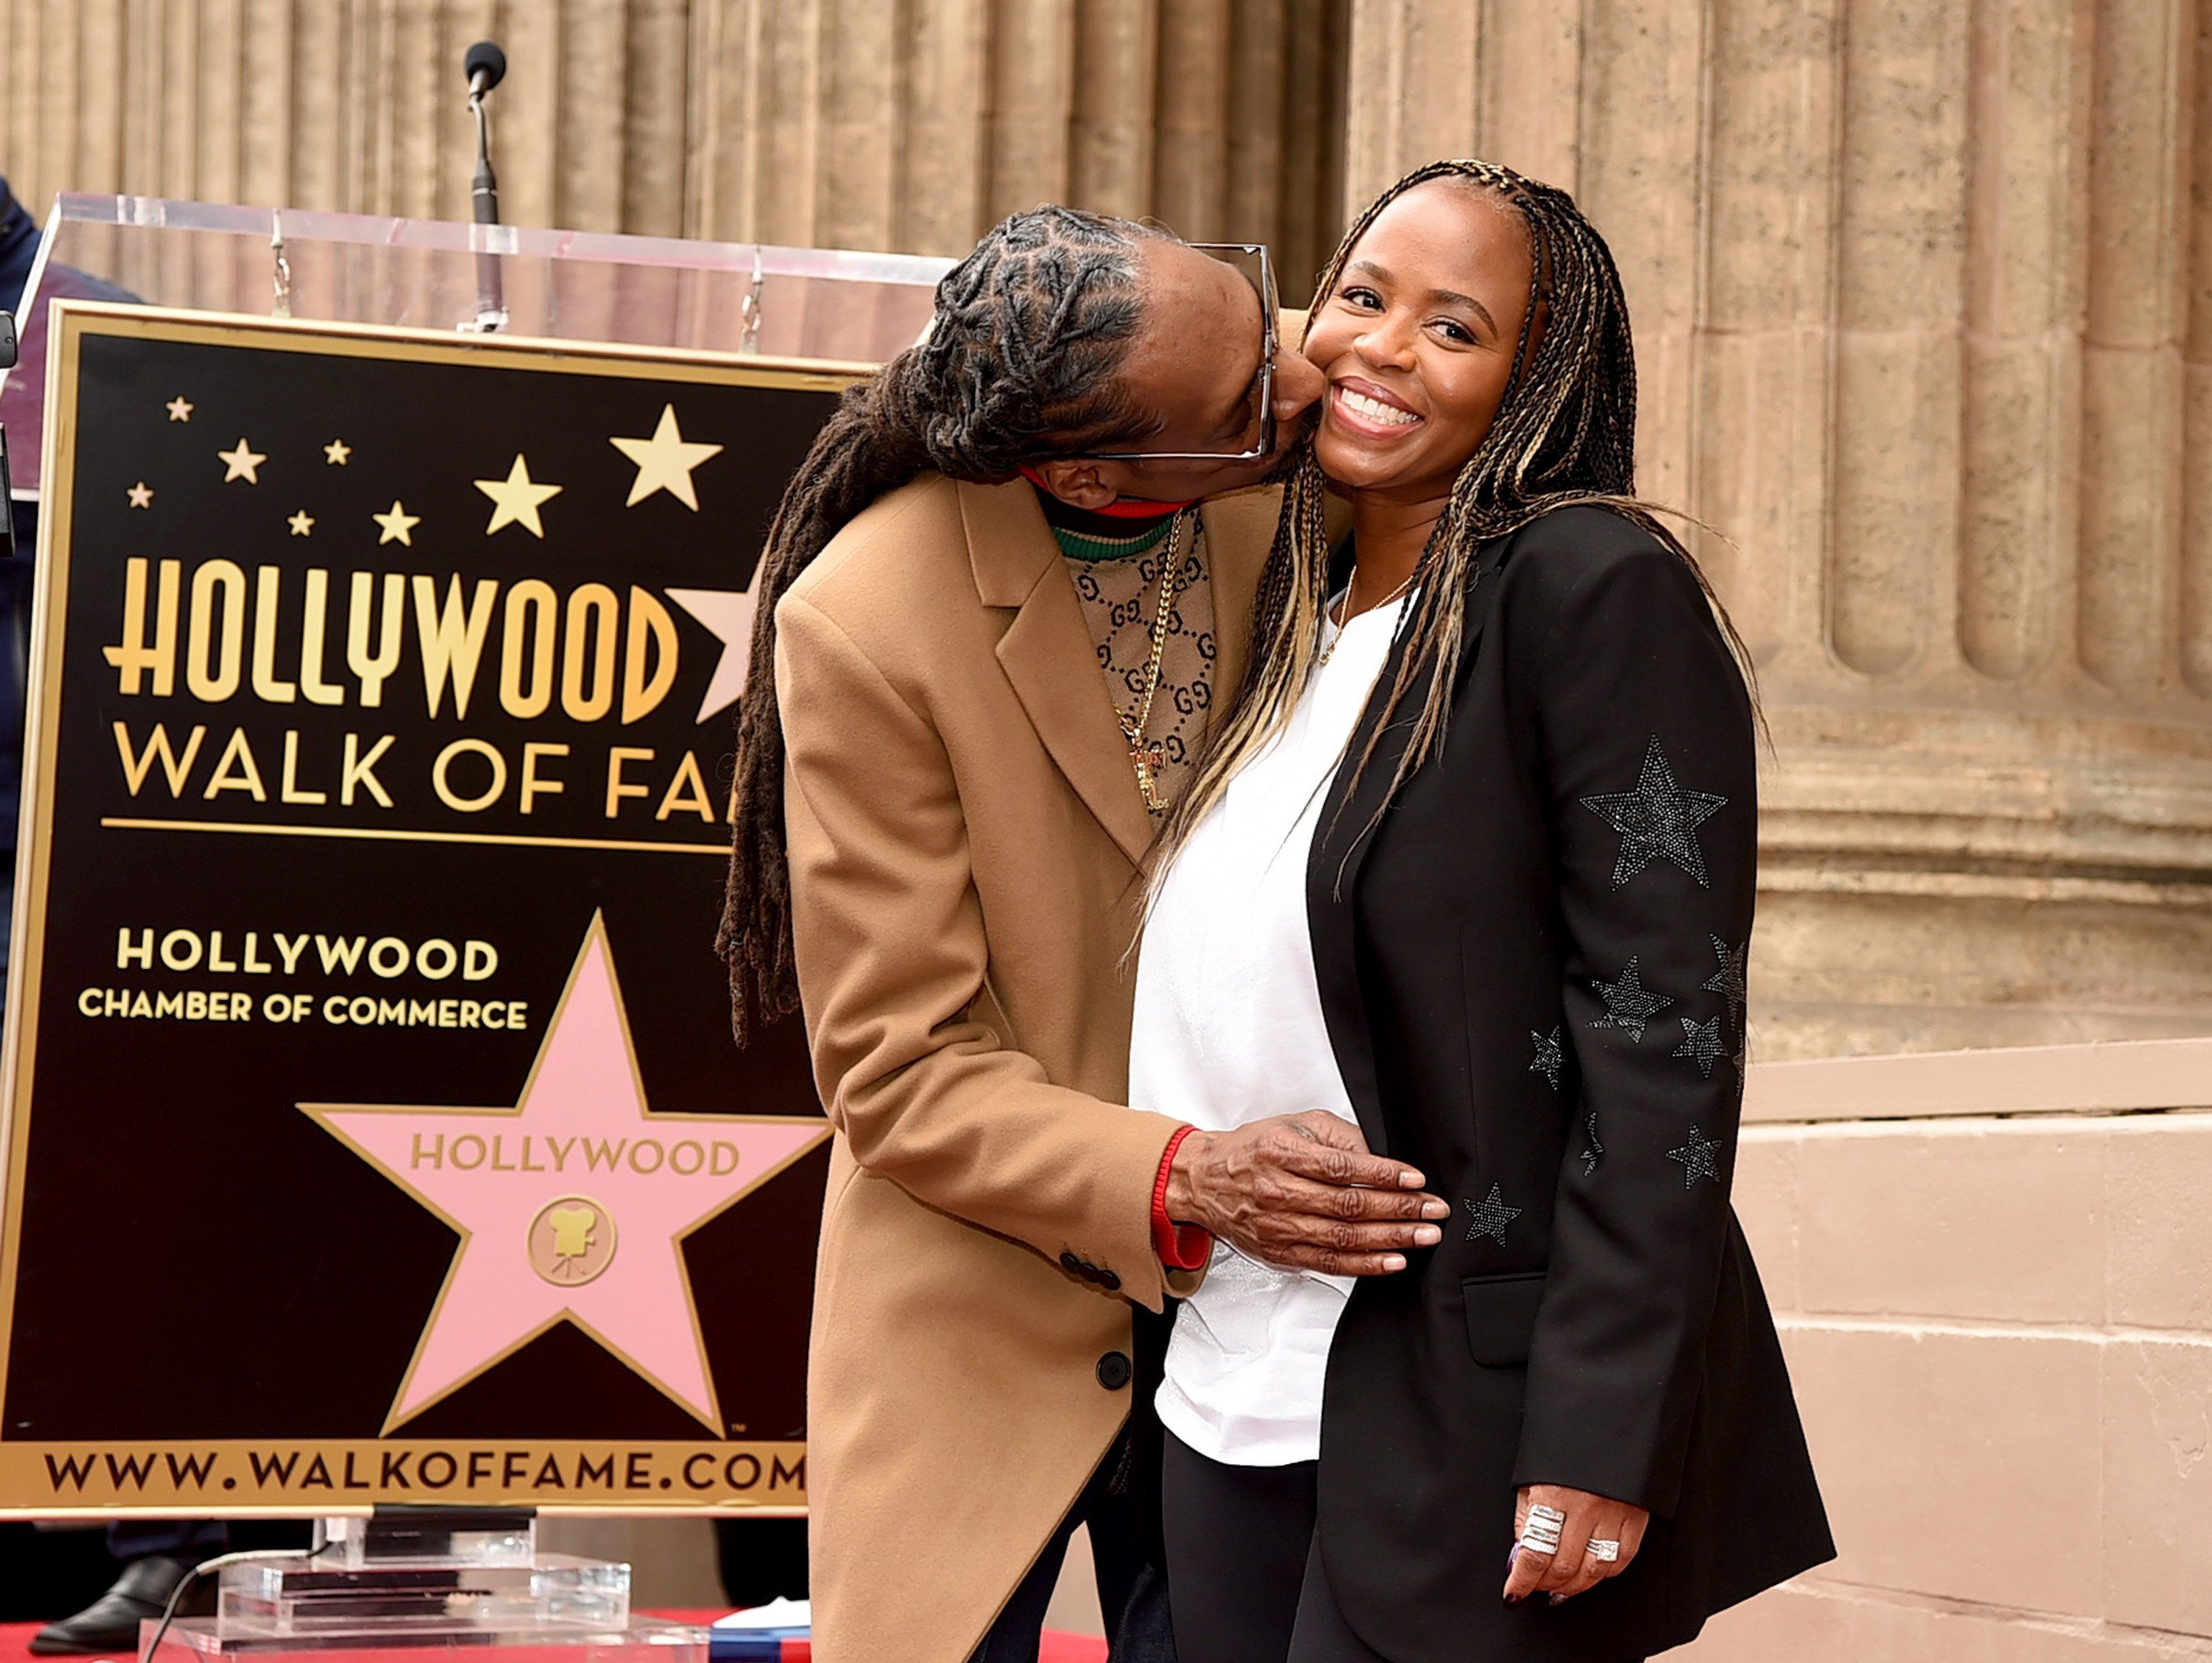 Snoop Dogg and Shante Broadus attend a ceremony honoring Snoop Dogg With Star On The Hollywood Walk Of Fame on November 19, 2018 l Source: Getty Images